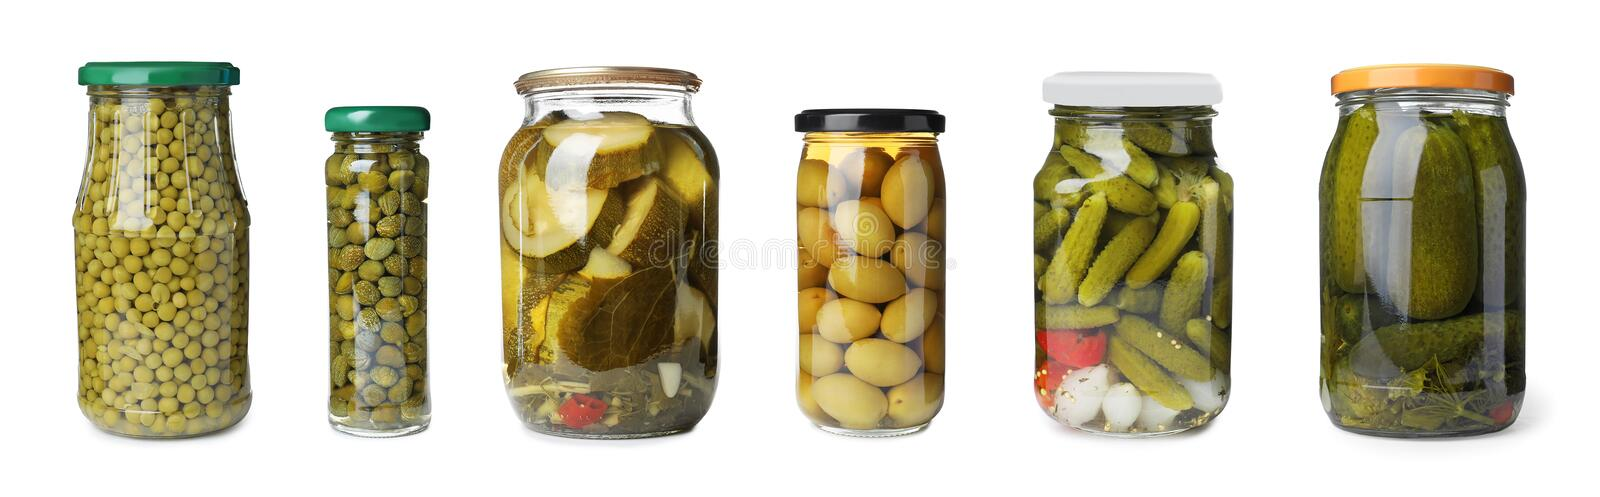 Set of glass jars with different pickled vegetables on background stock image